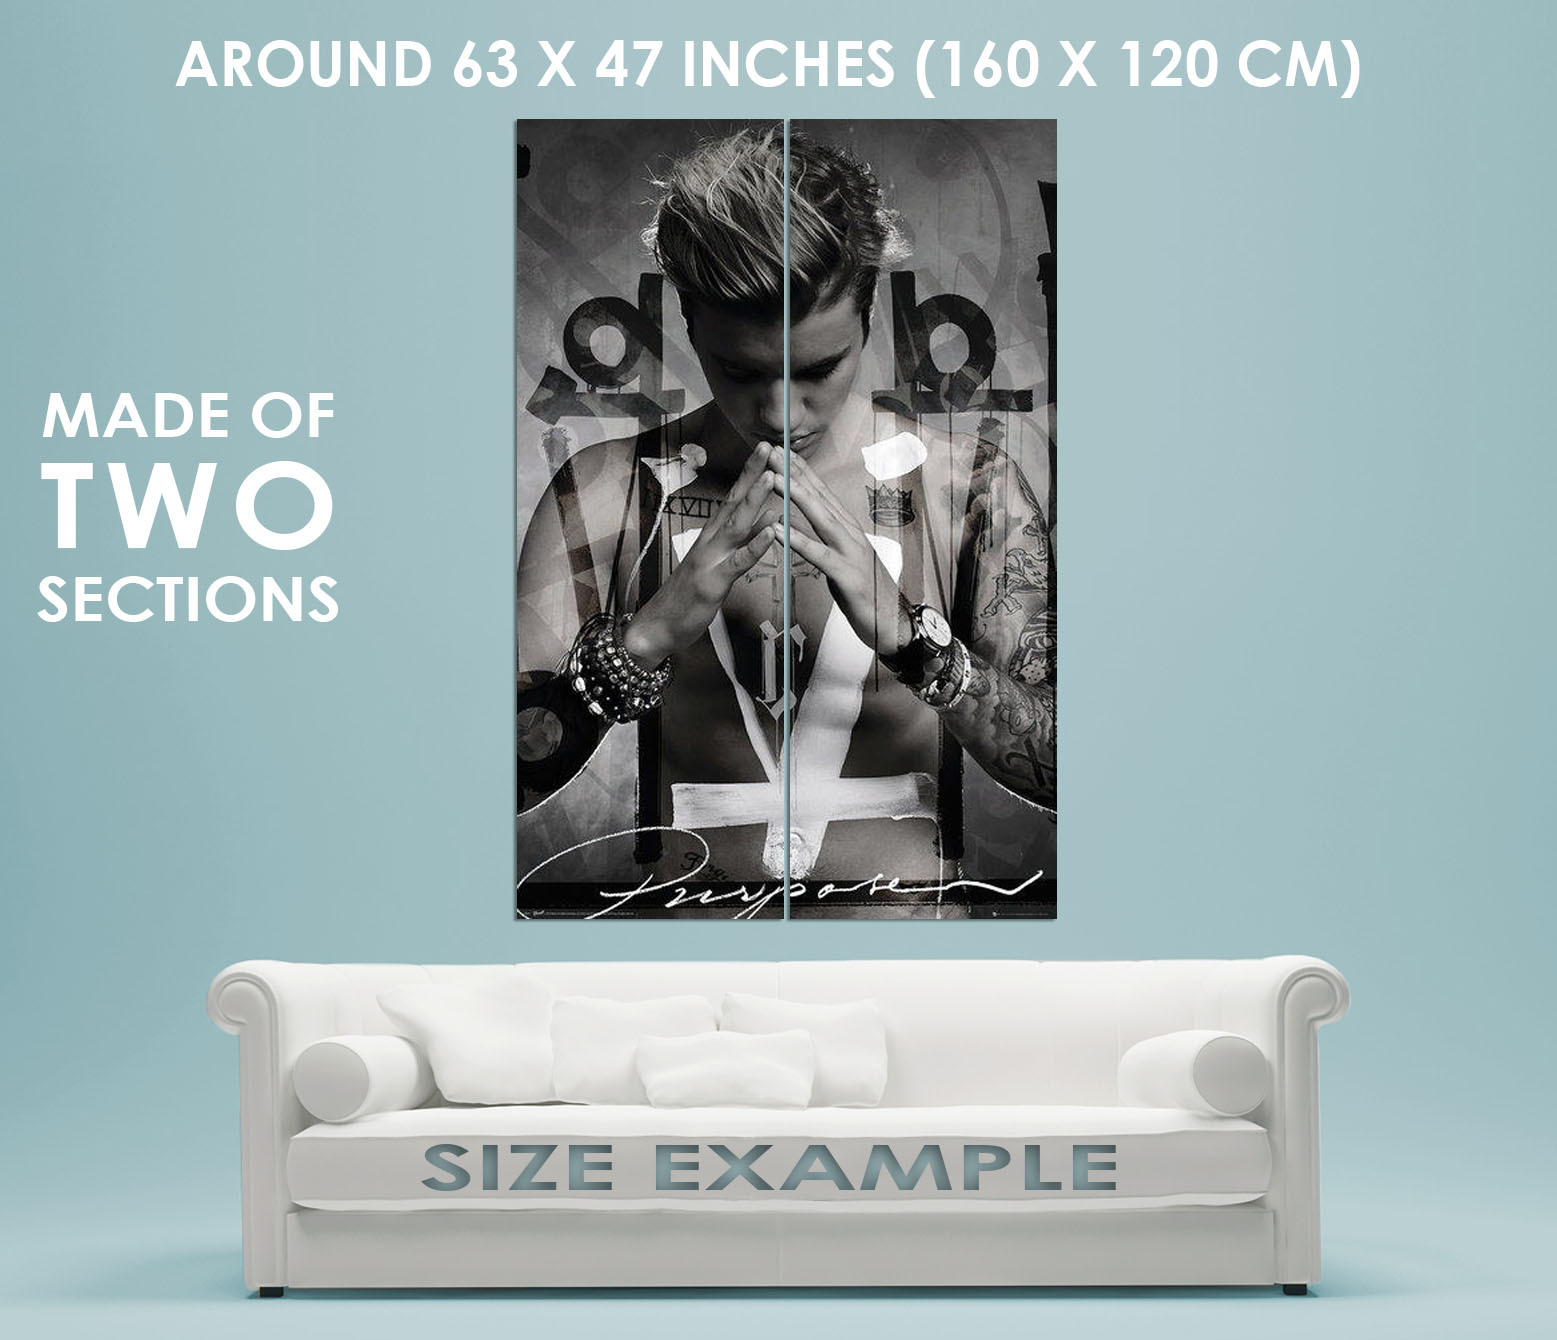 90573 JUSTIN BIEBER PERSONALITY MUSIC PURPOSE TOPLESS Decor Wall Print POSTER